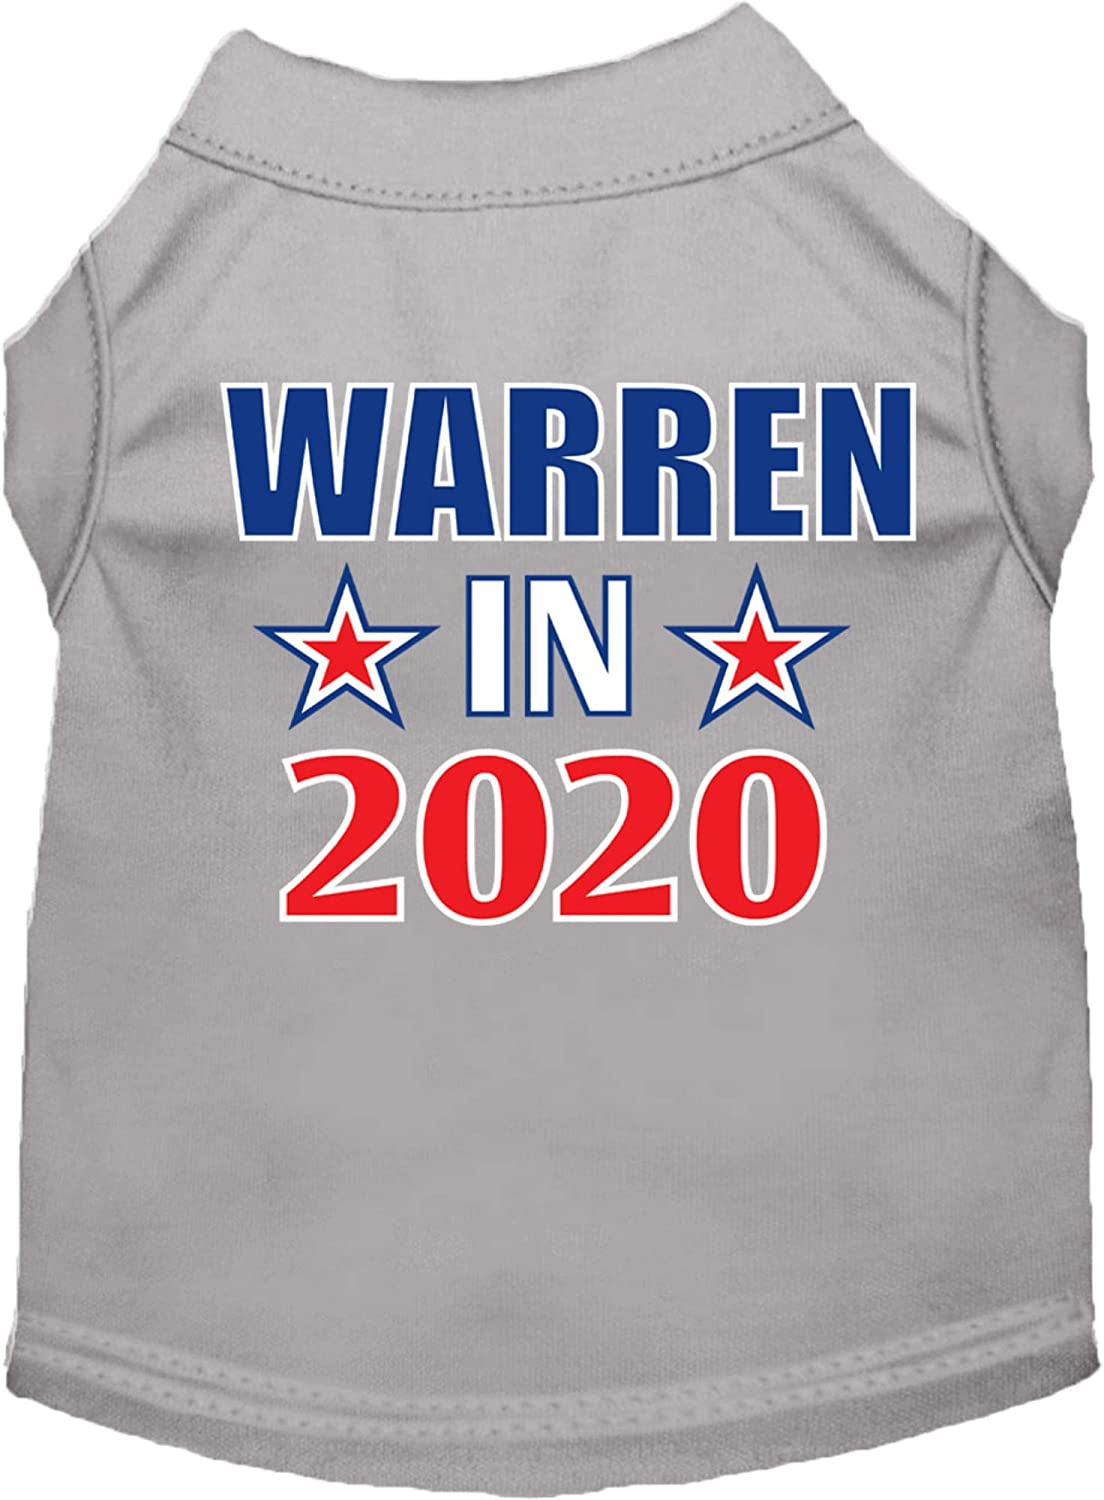 Mirage Outlet SALE Translated Pet Product Warren in 2020 Shirt Grey Lg Screen Dog Print